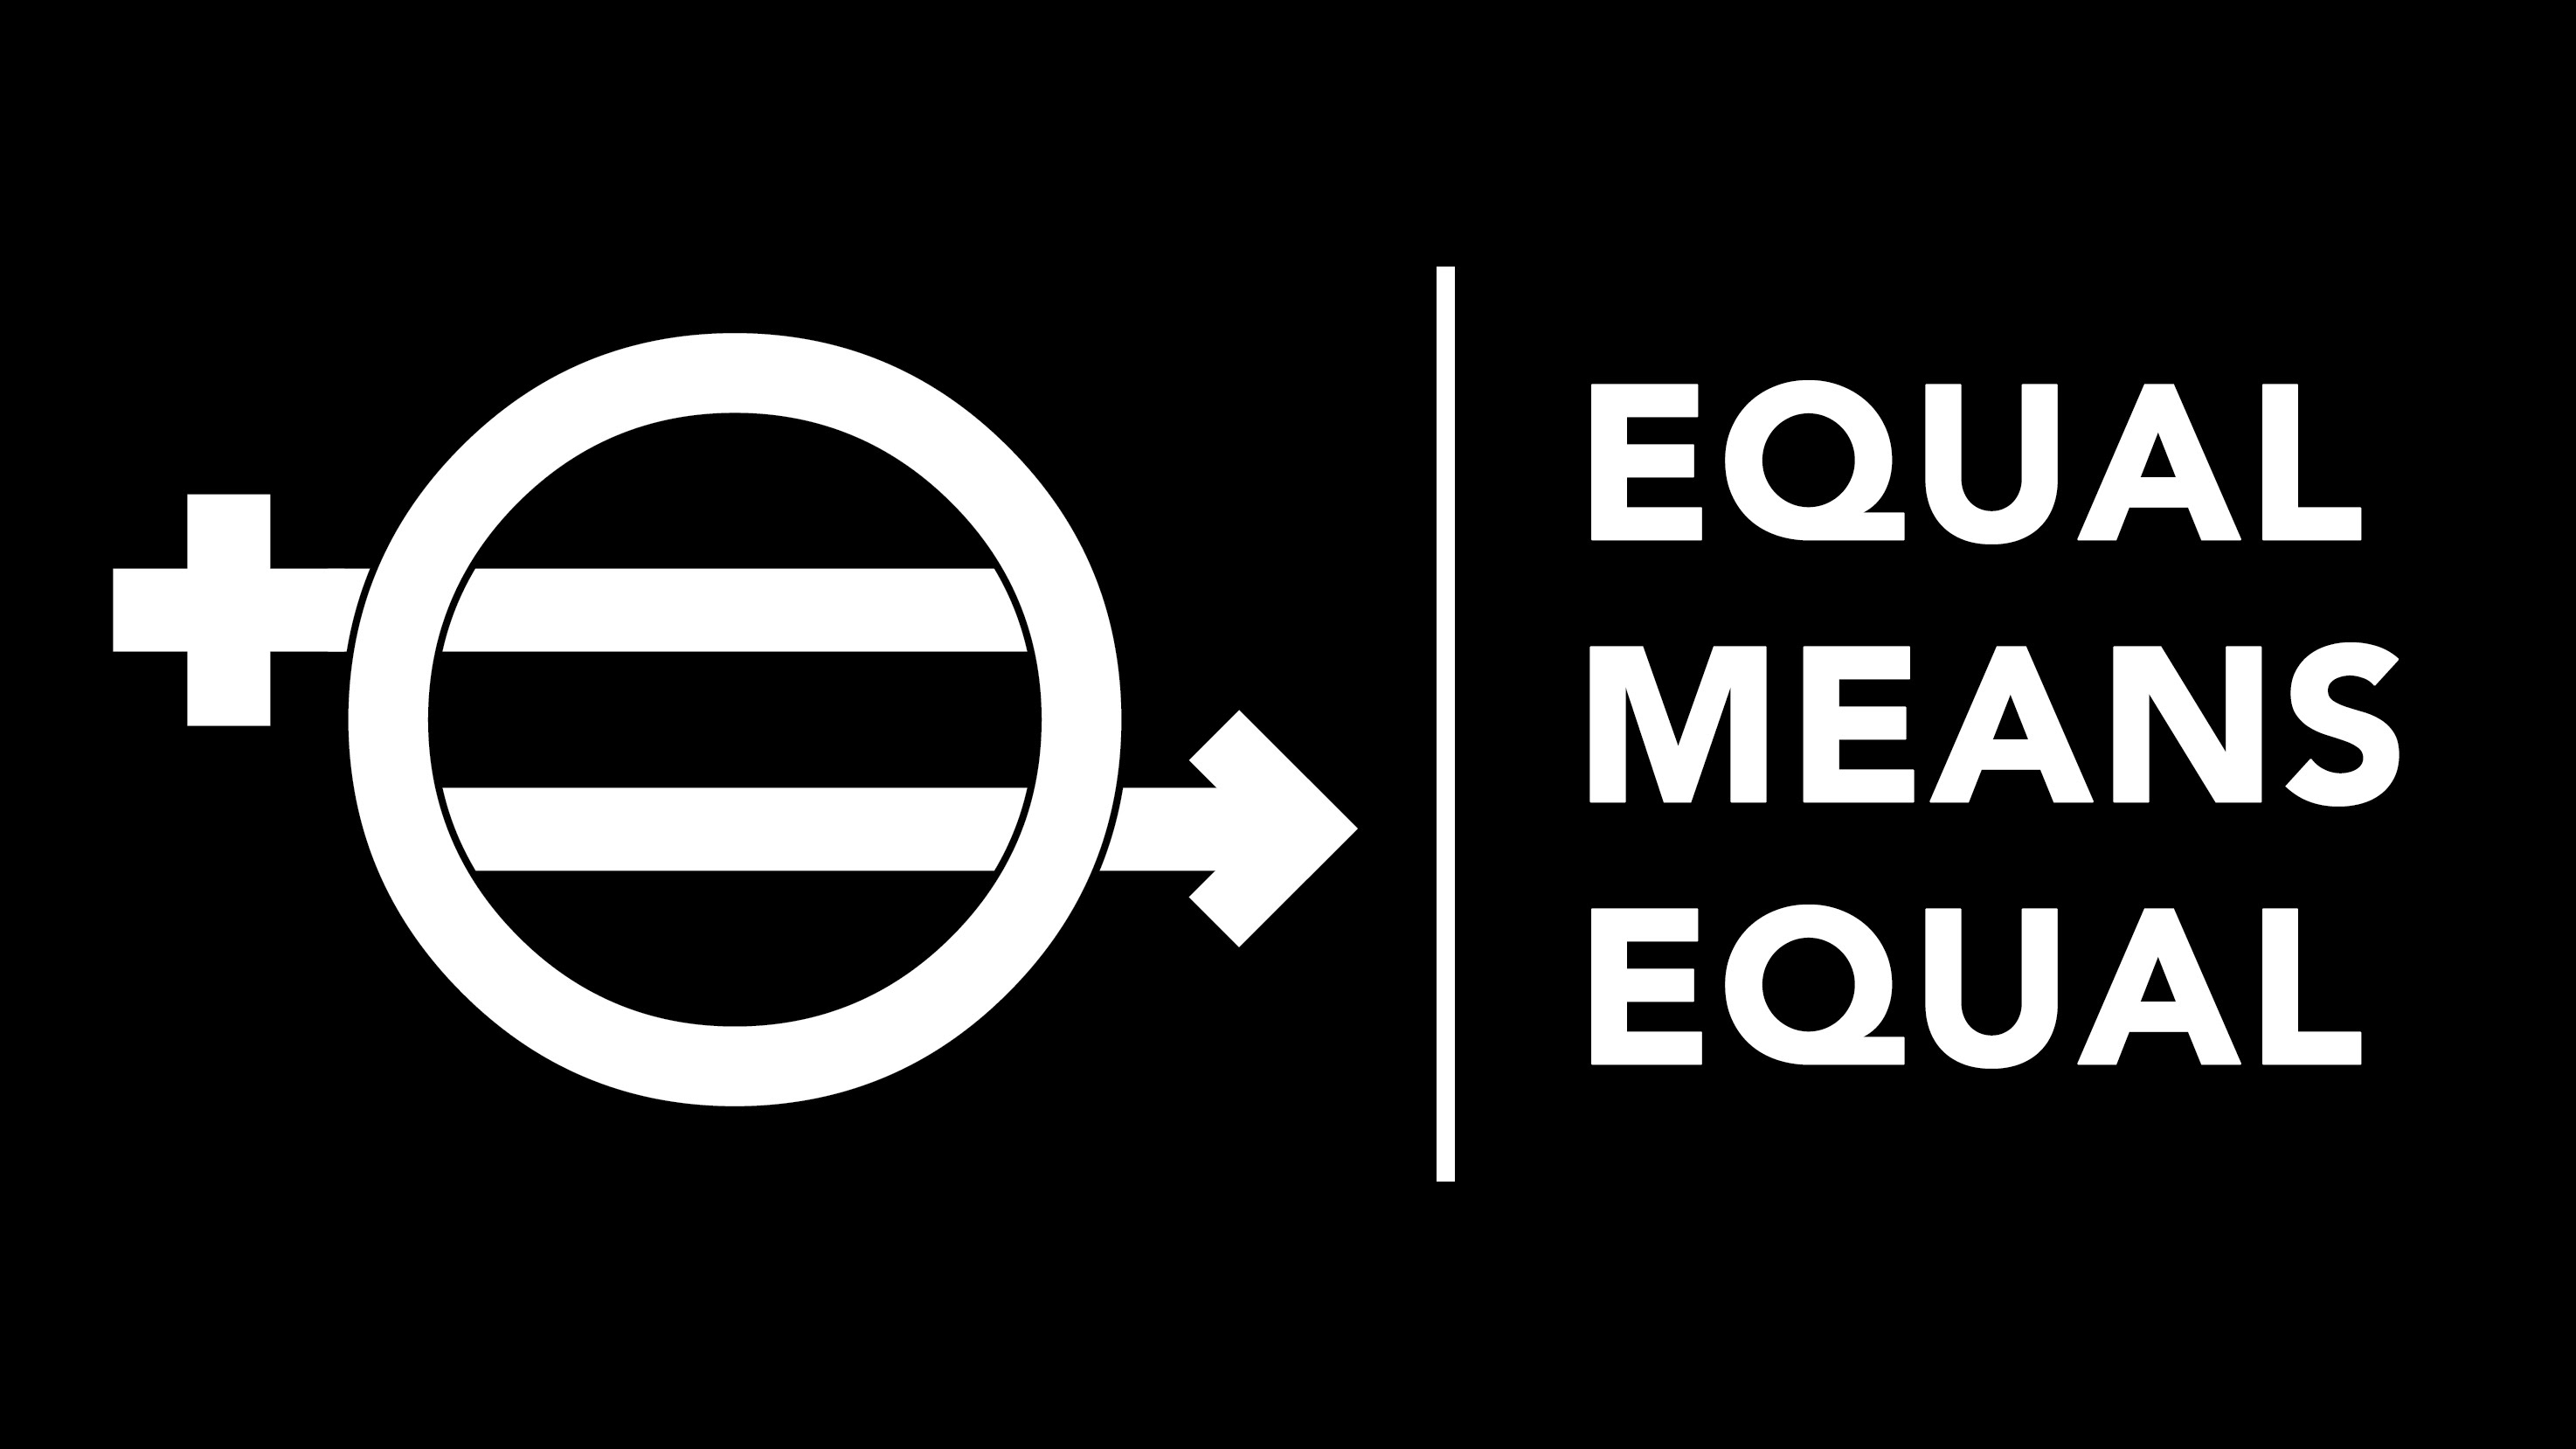 equal means equal film underscores urgency of ratifying the equal